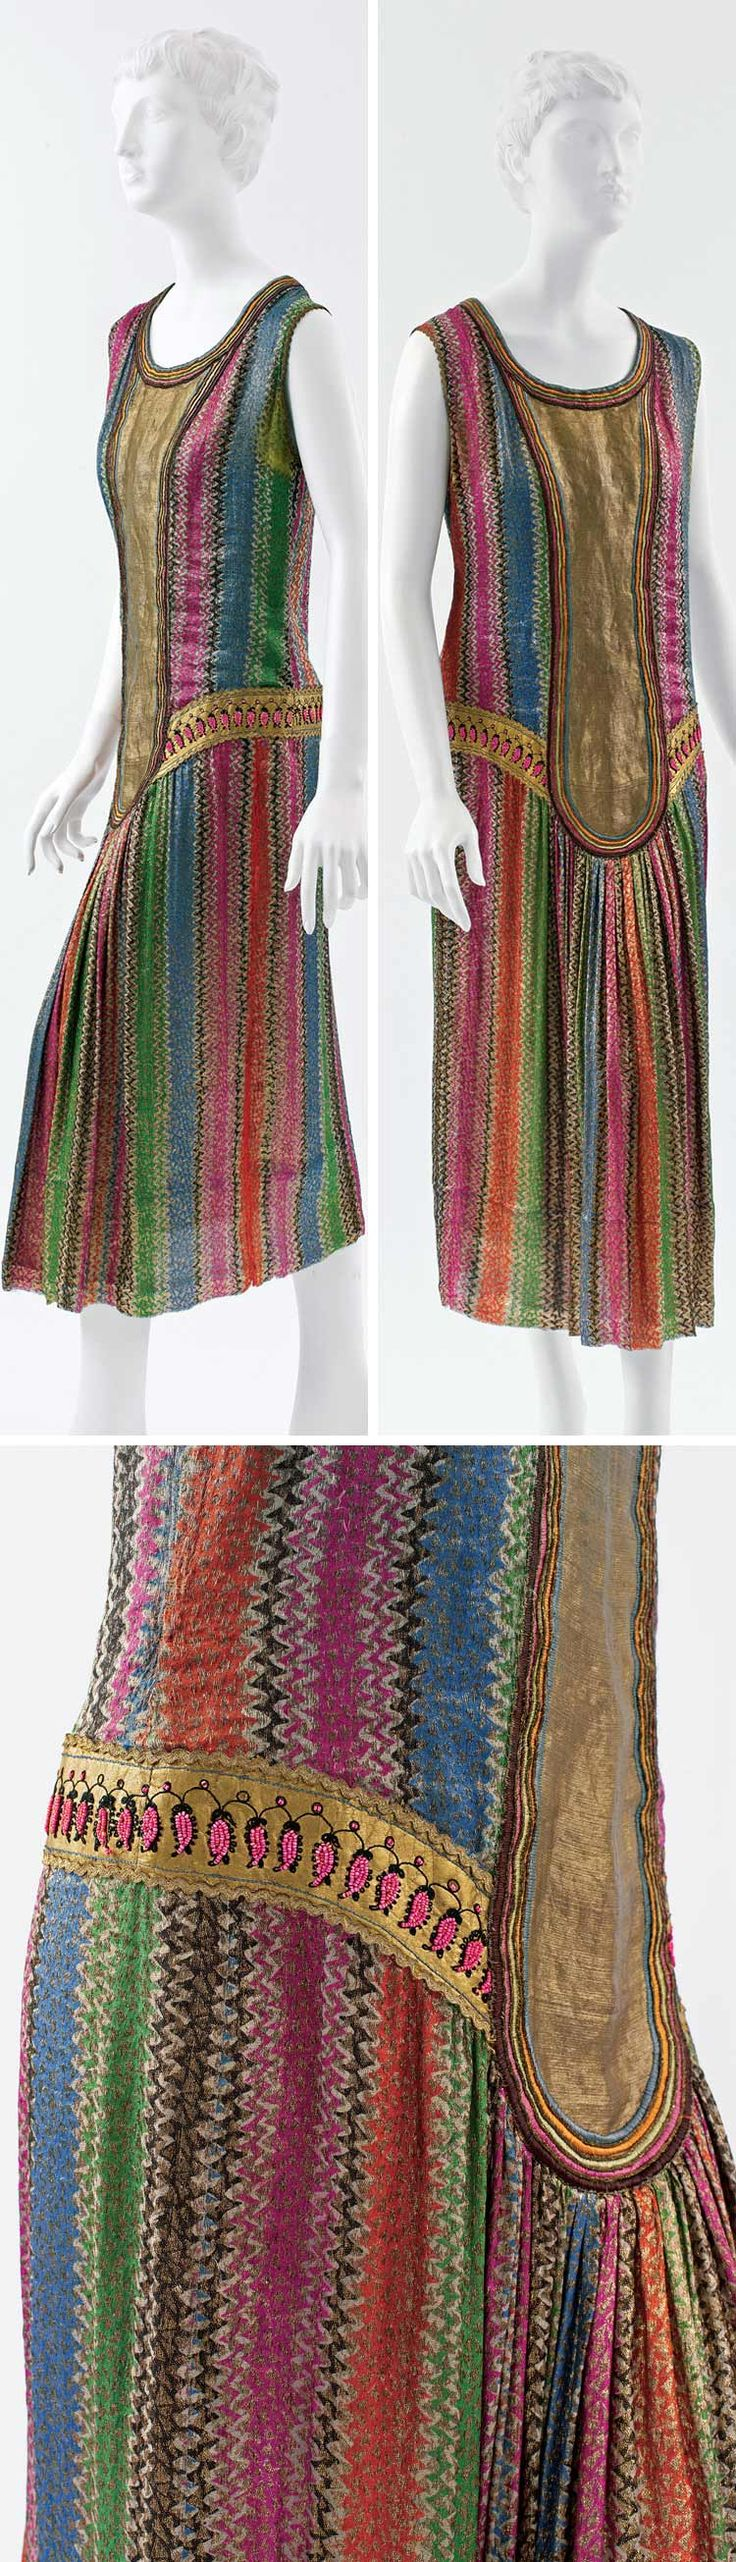 20s Dress, Poiret, ca. 1925. Silk and leather. Metropolitan Museum of Art colorful stripes blue red pink green gold yellow sleeveless unique style vintage flapper art deco